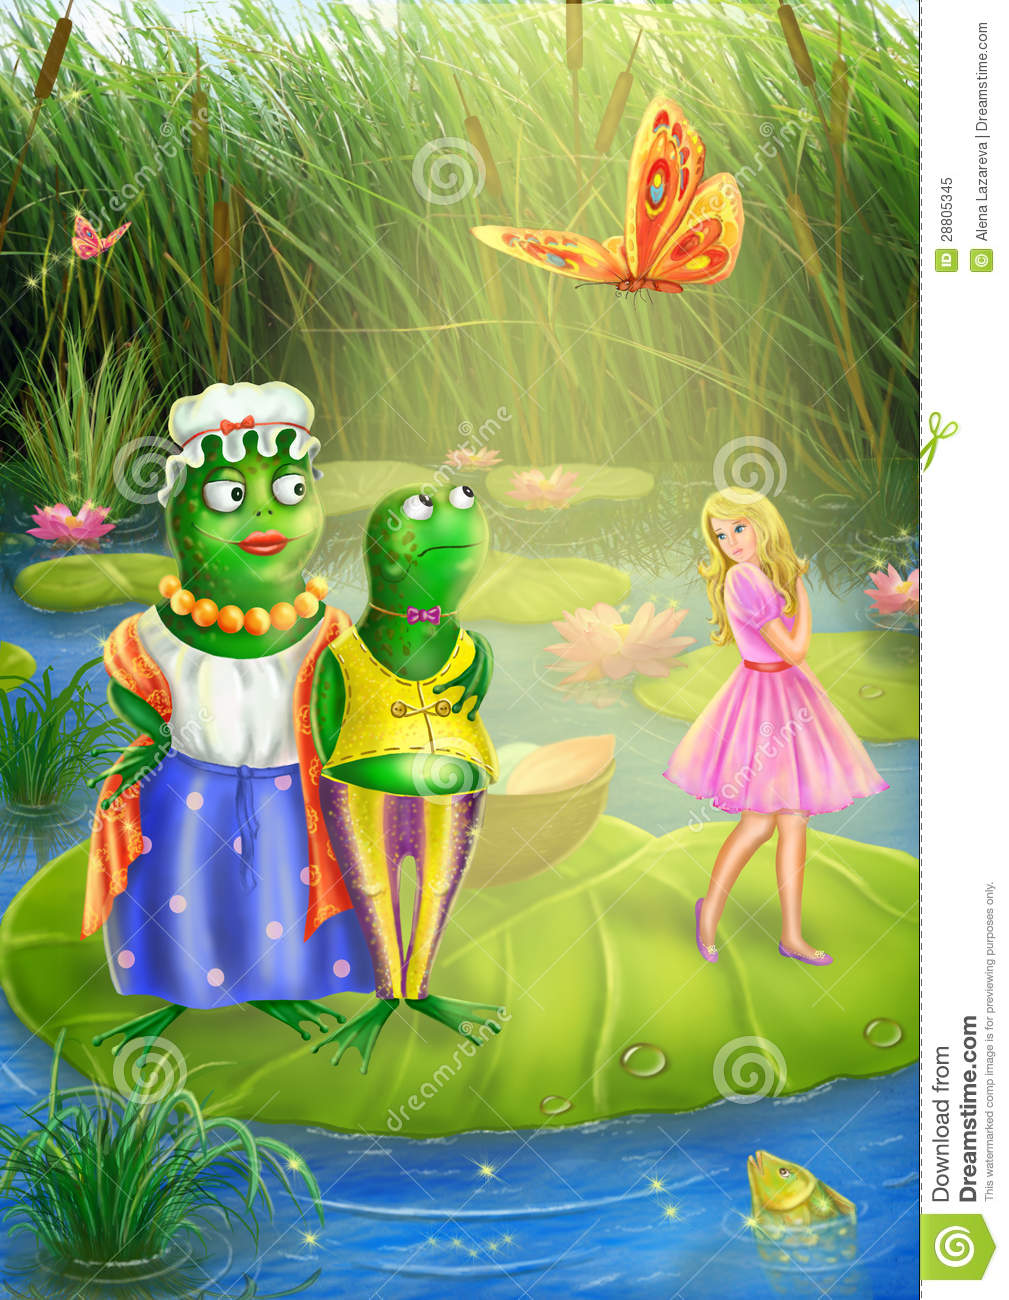 thumbelina and frog royalty free stock photo image 28805345